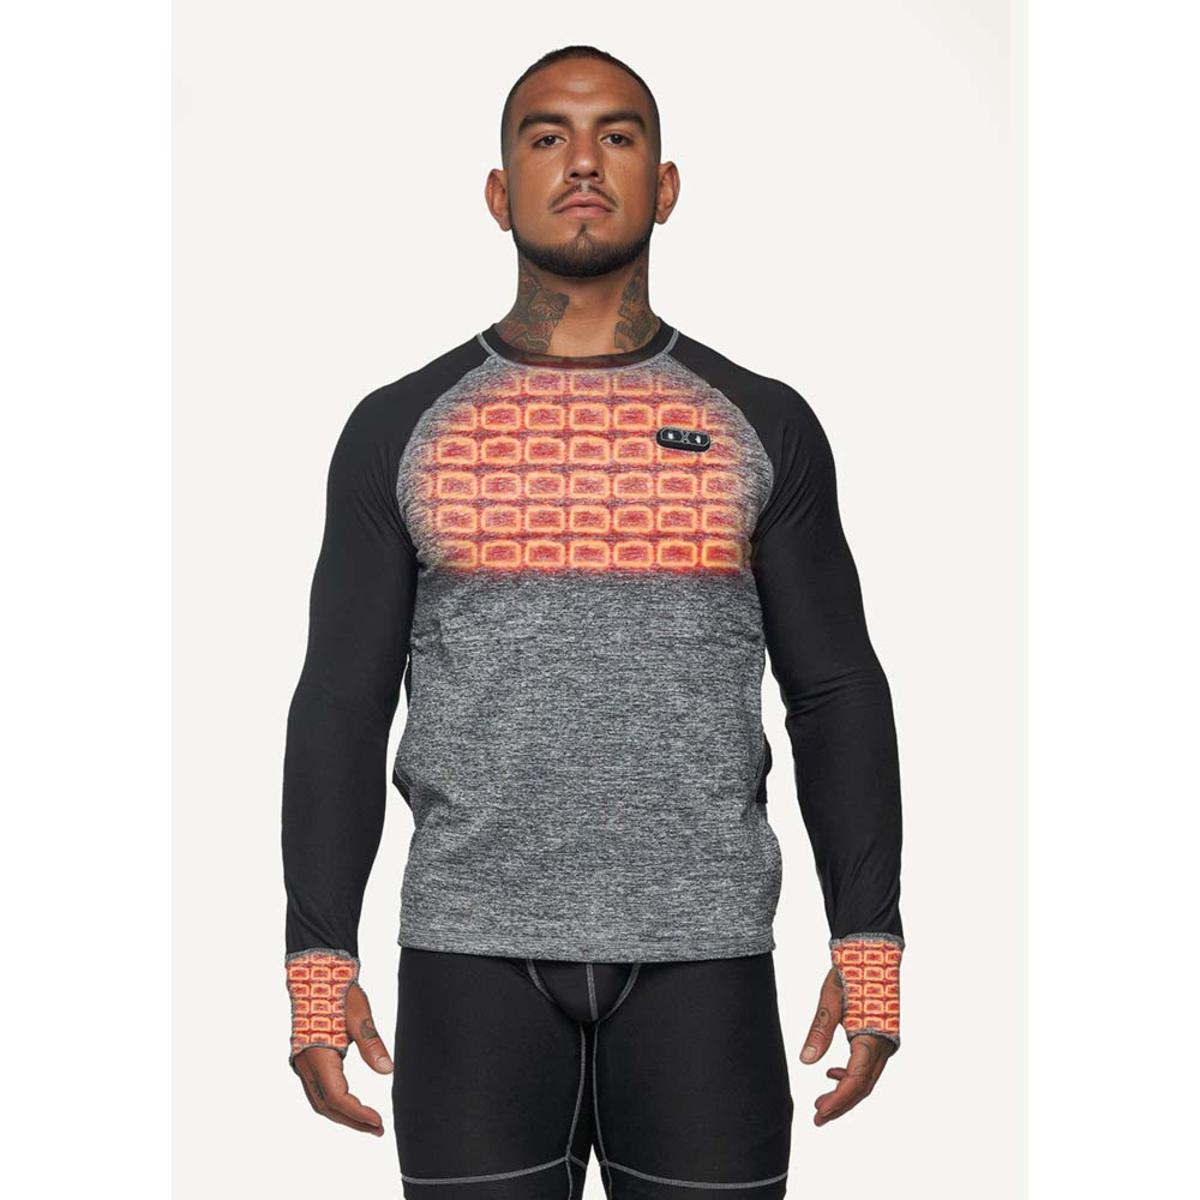 FNDN Heated Skin-Fit Base Layer PRO Top